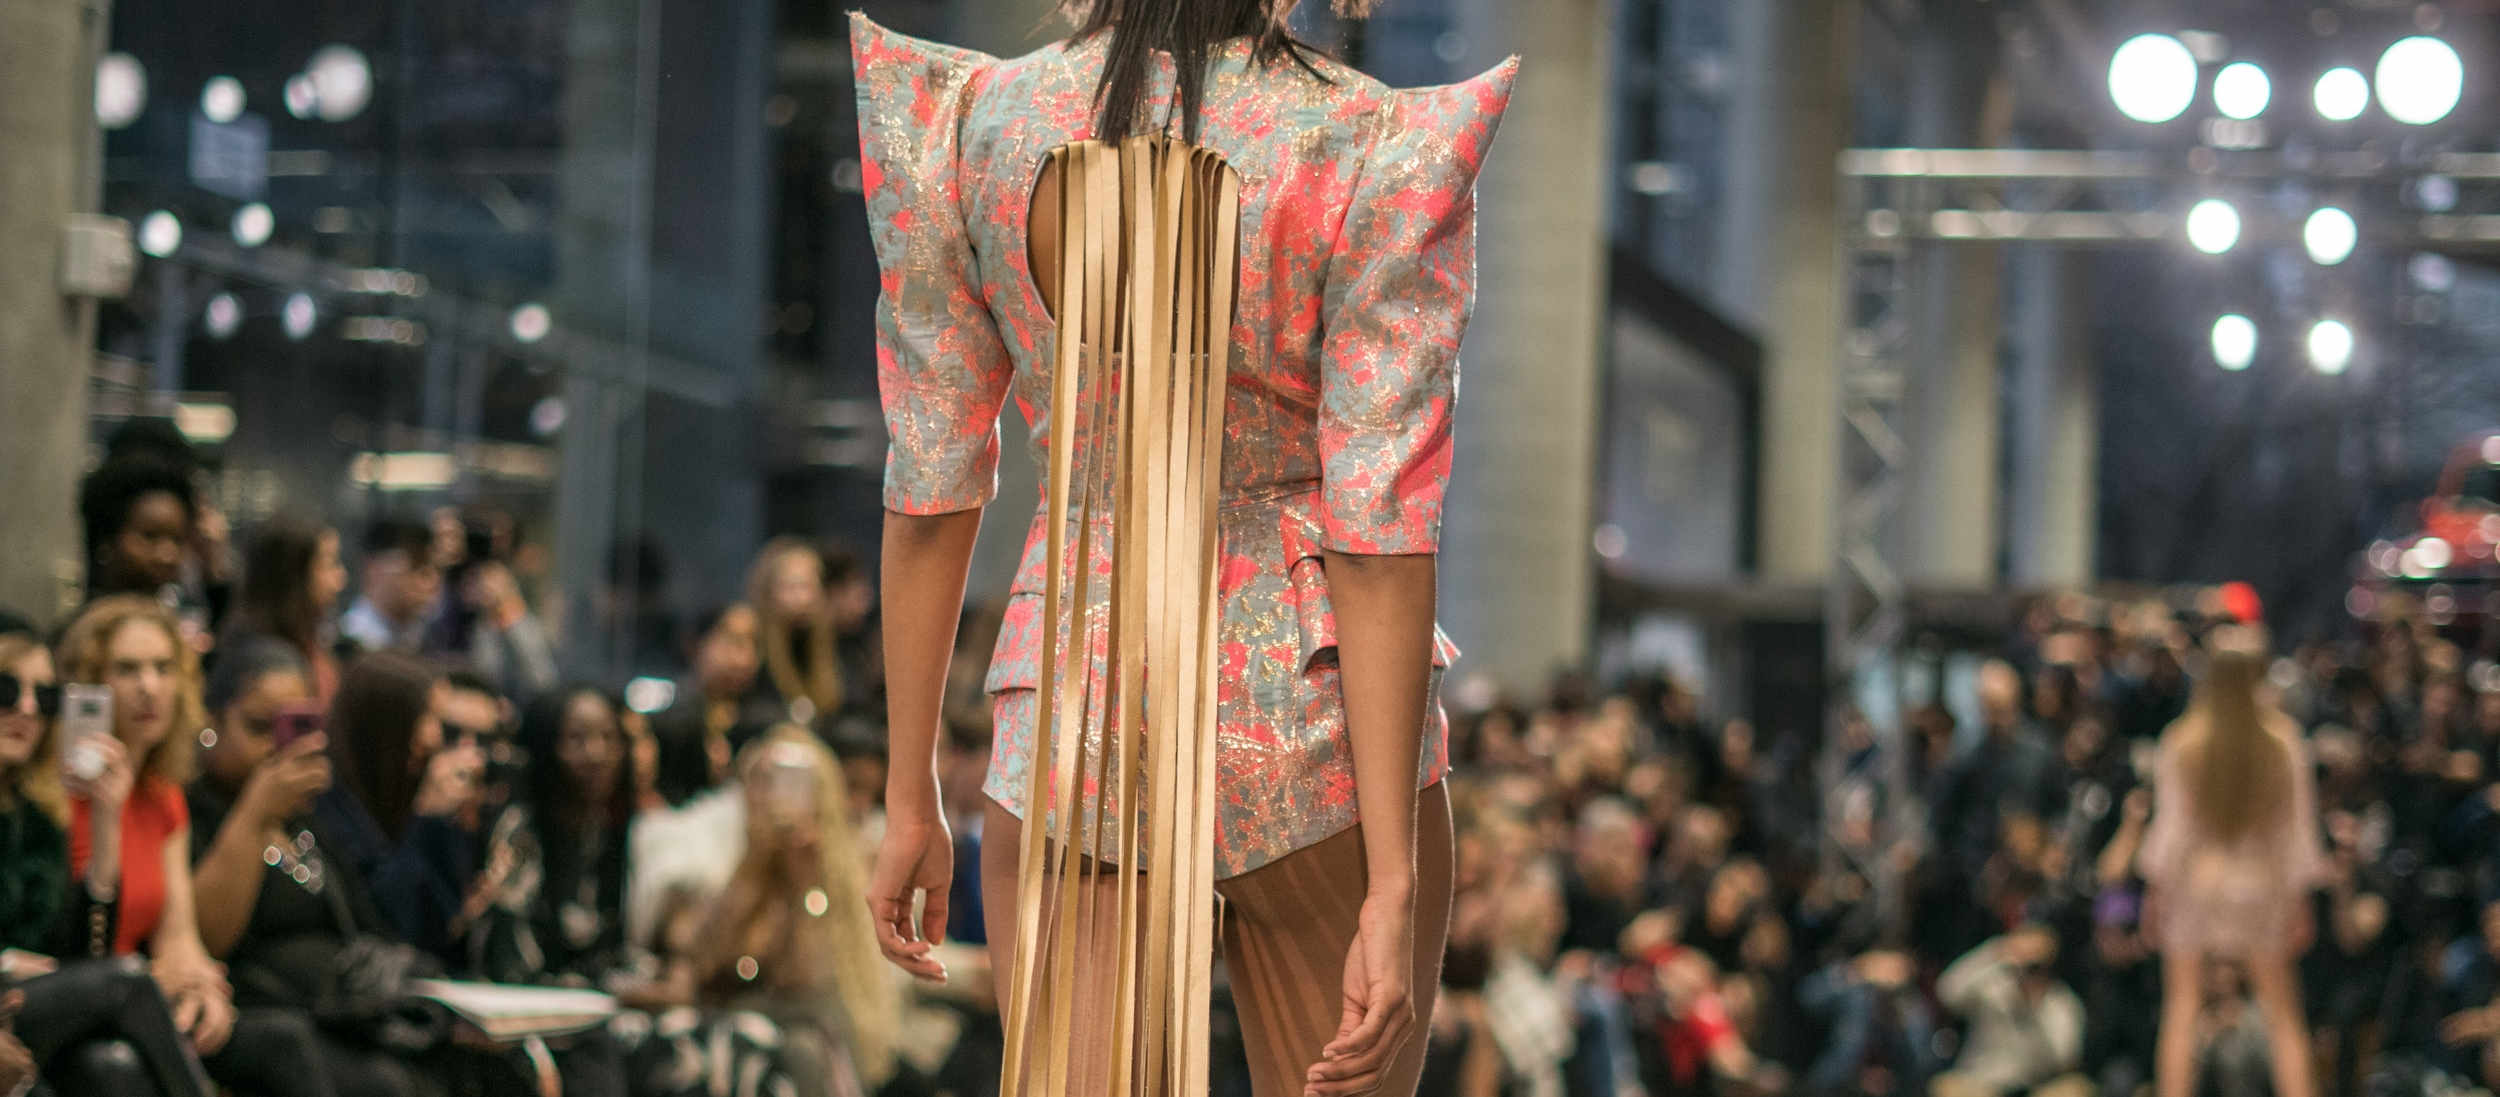 FASHION WEEK INVITE GUIDE - If this is your first season attending Fashion Week, there is no secret recipe for getting invites to the shows, it just takes a bit of planning, strategy & follow up...